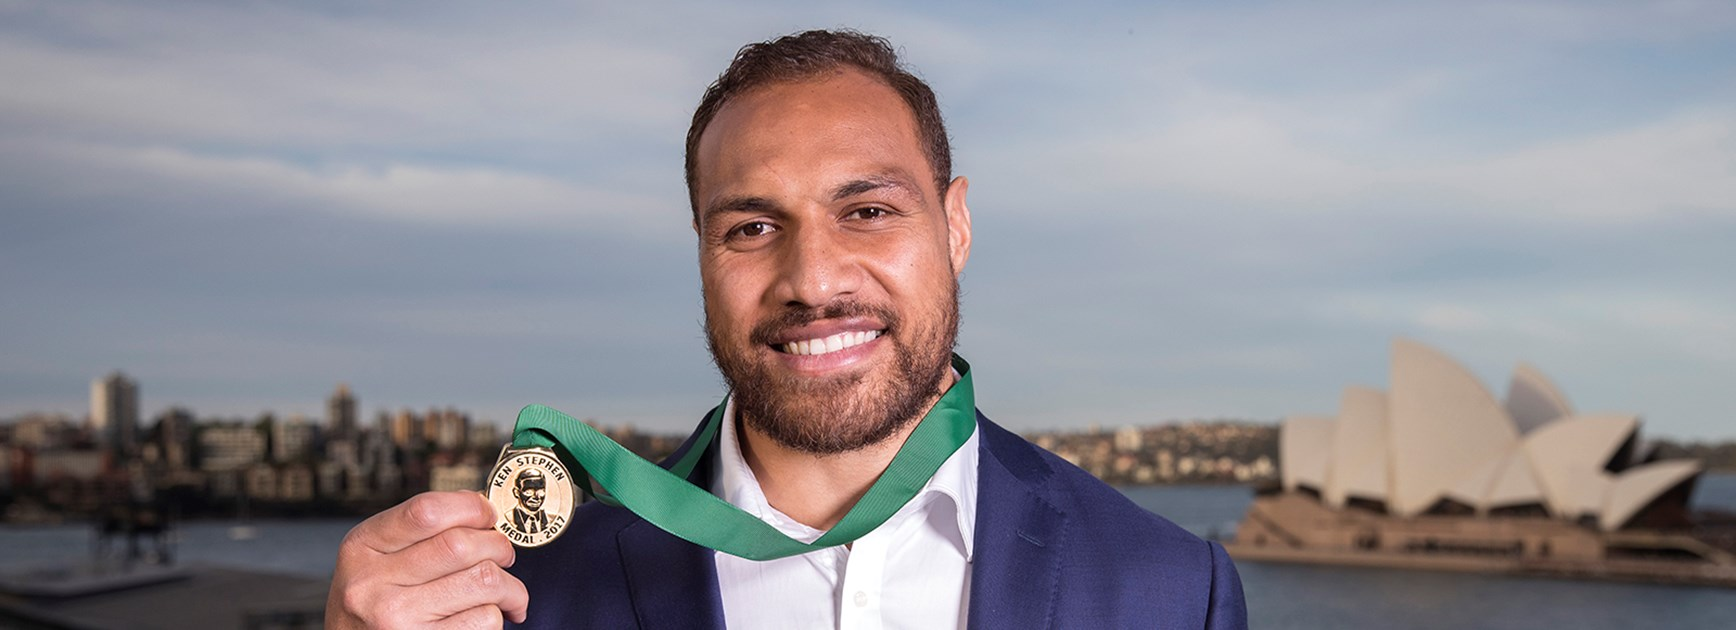 Cronulla Sharks forward Sam Tagataese has been awarded the 2017 Ken Stephen Medal for service to community.